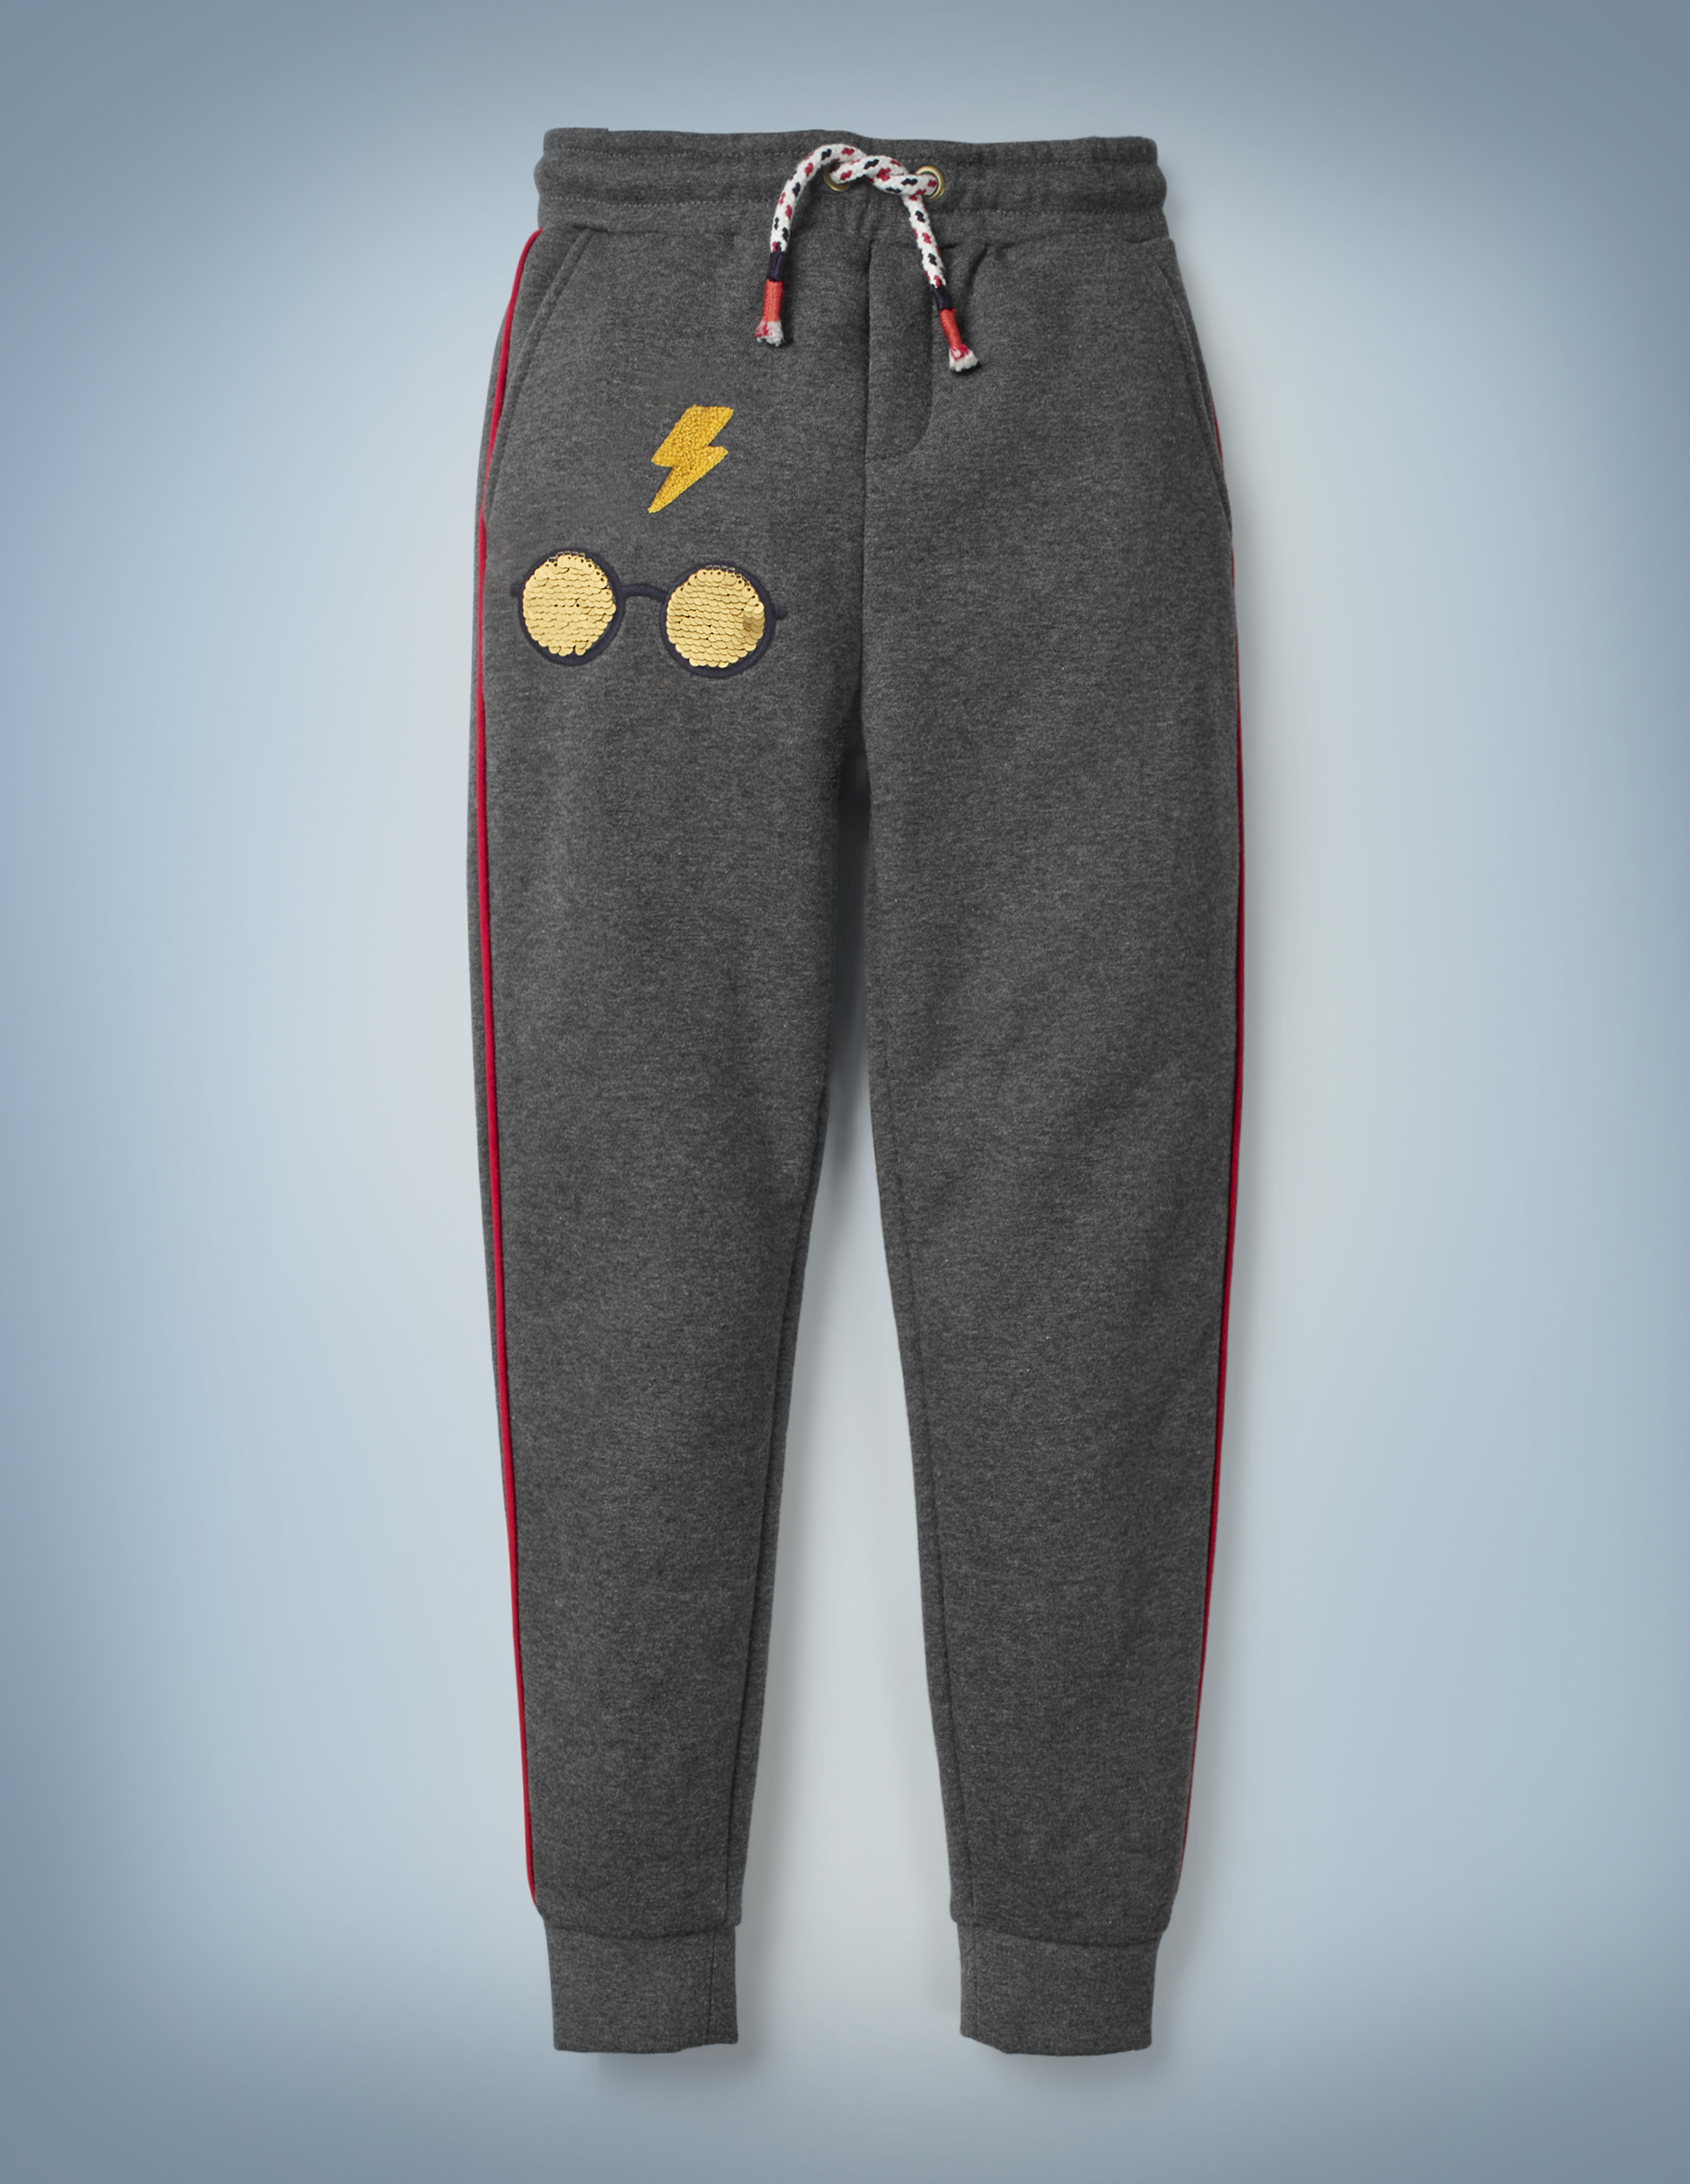 The Mini Boden Transfiguration Sequin Joggers in gray come with a drawstring waist and design featuring Harry Potter's iconic glasses and lightning bolt scar. They retail at £26.